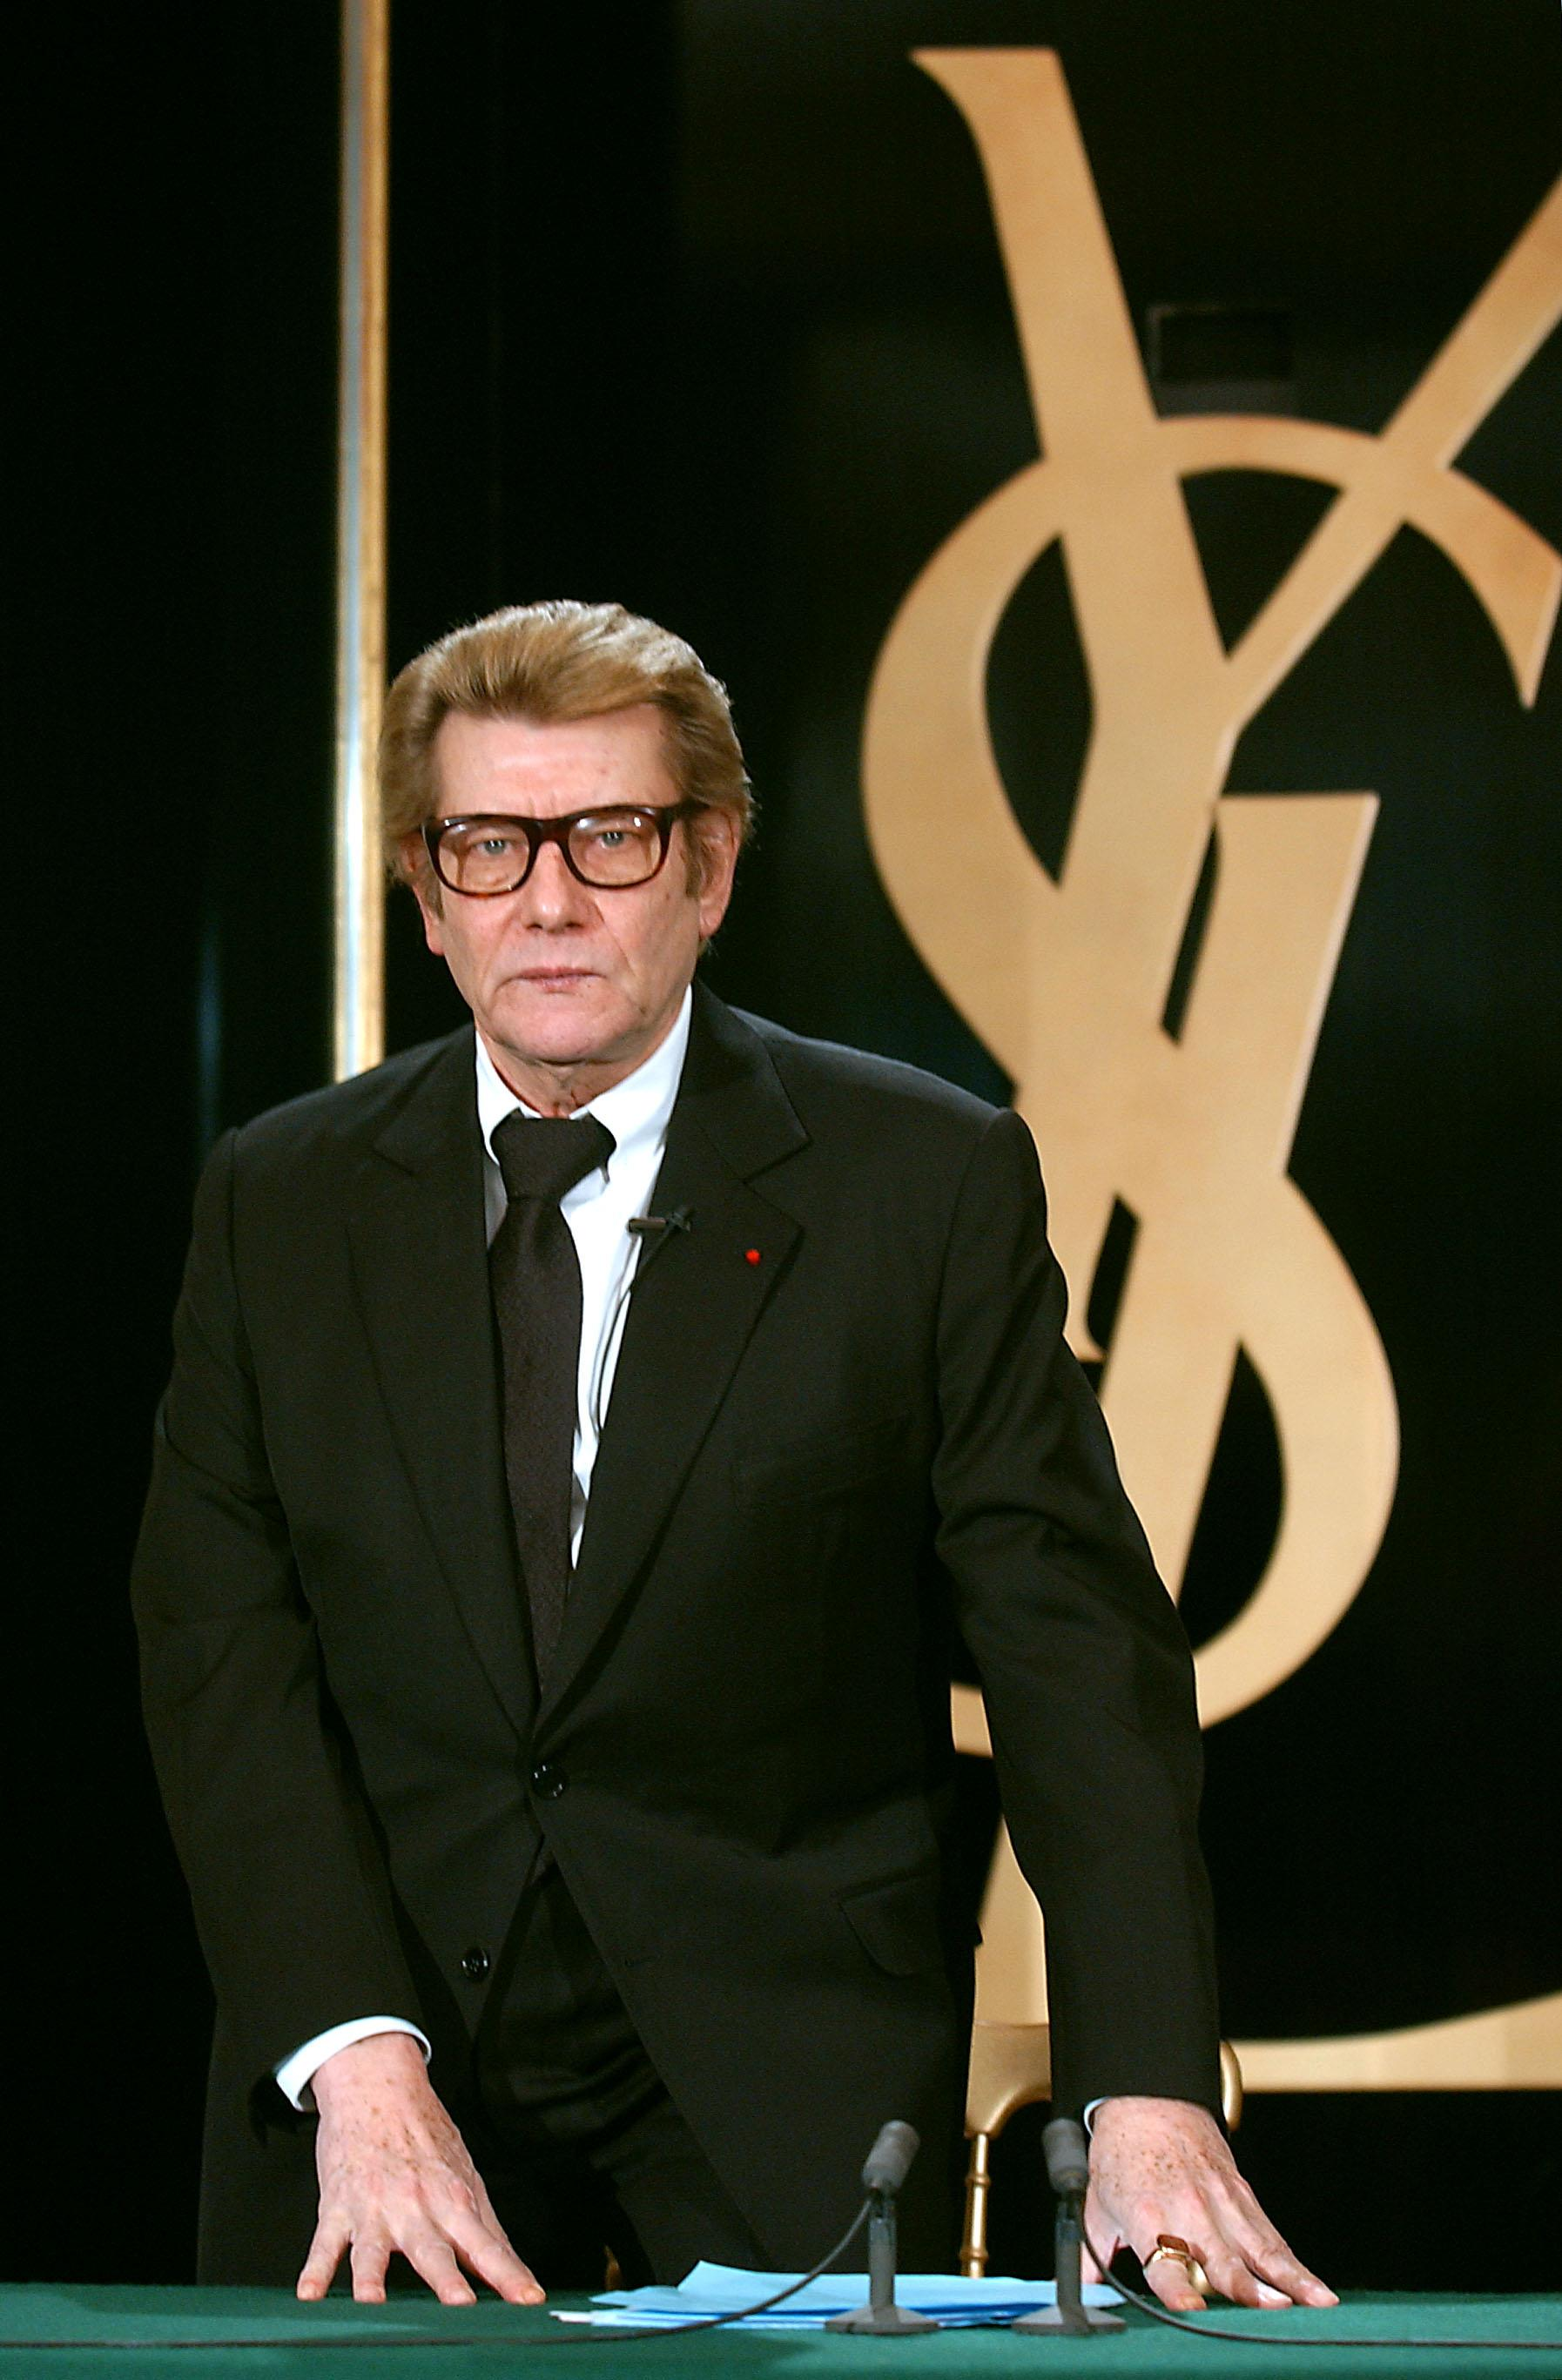 Films about Yves Saint Laurent and jihadists lead French awards